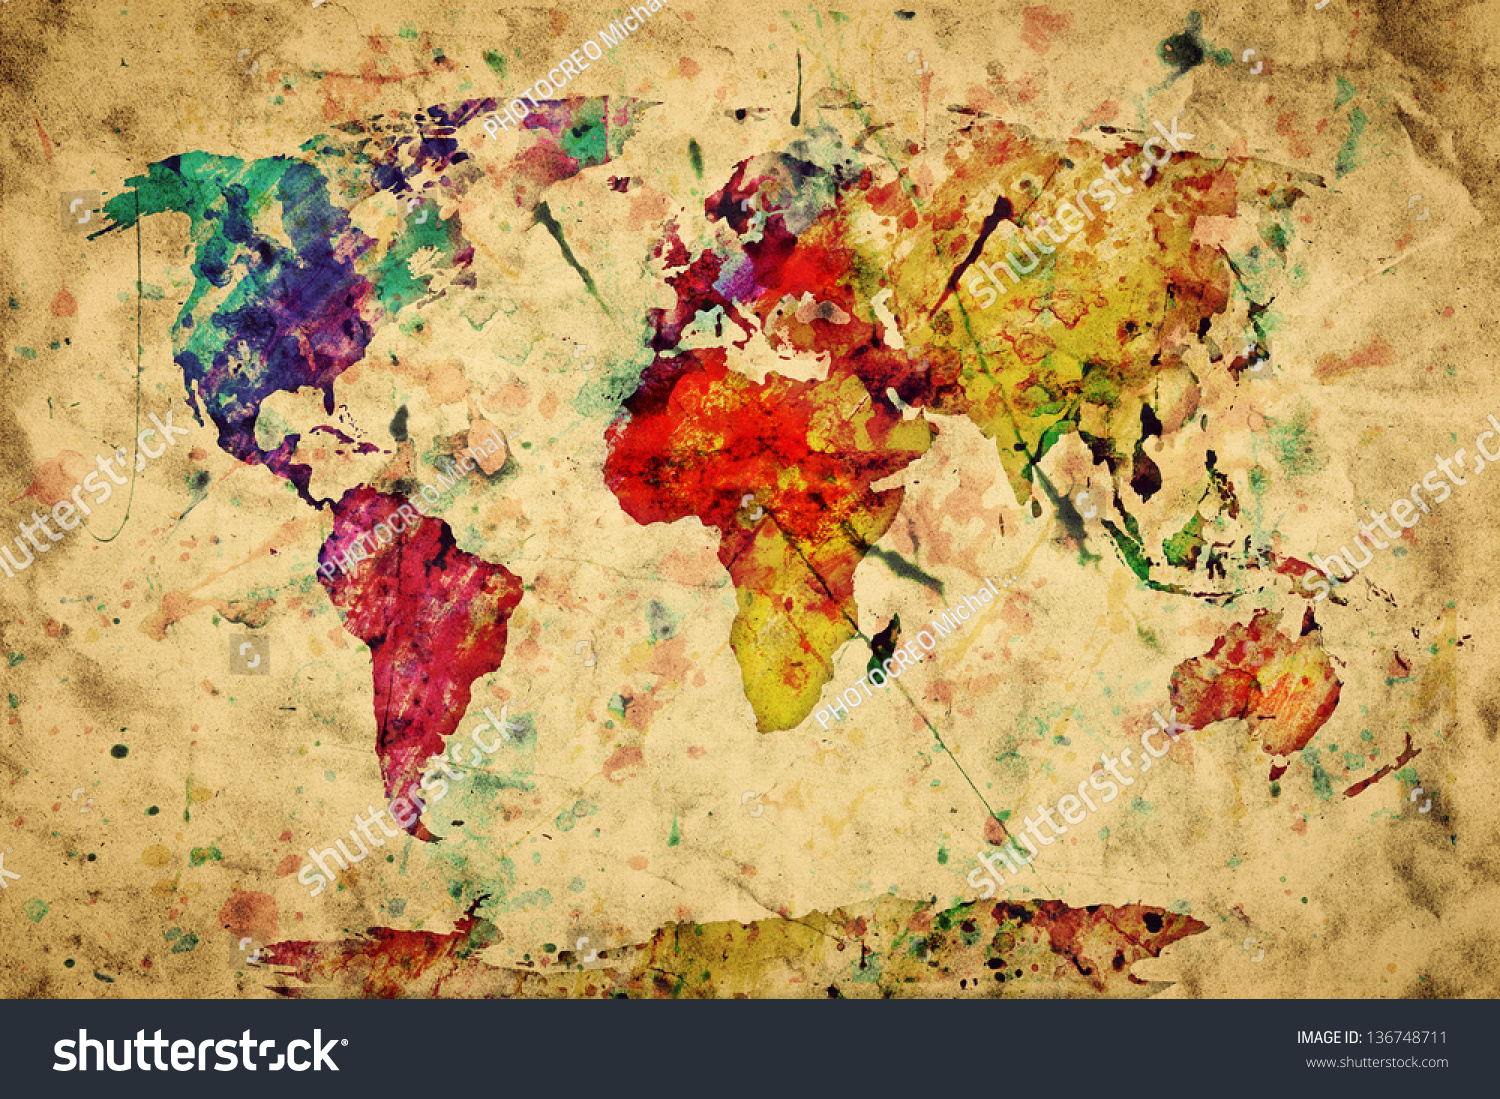 Vintage World Map Colorful Paint Watercolor Stock Illustration - Colorful world map painting